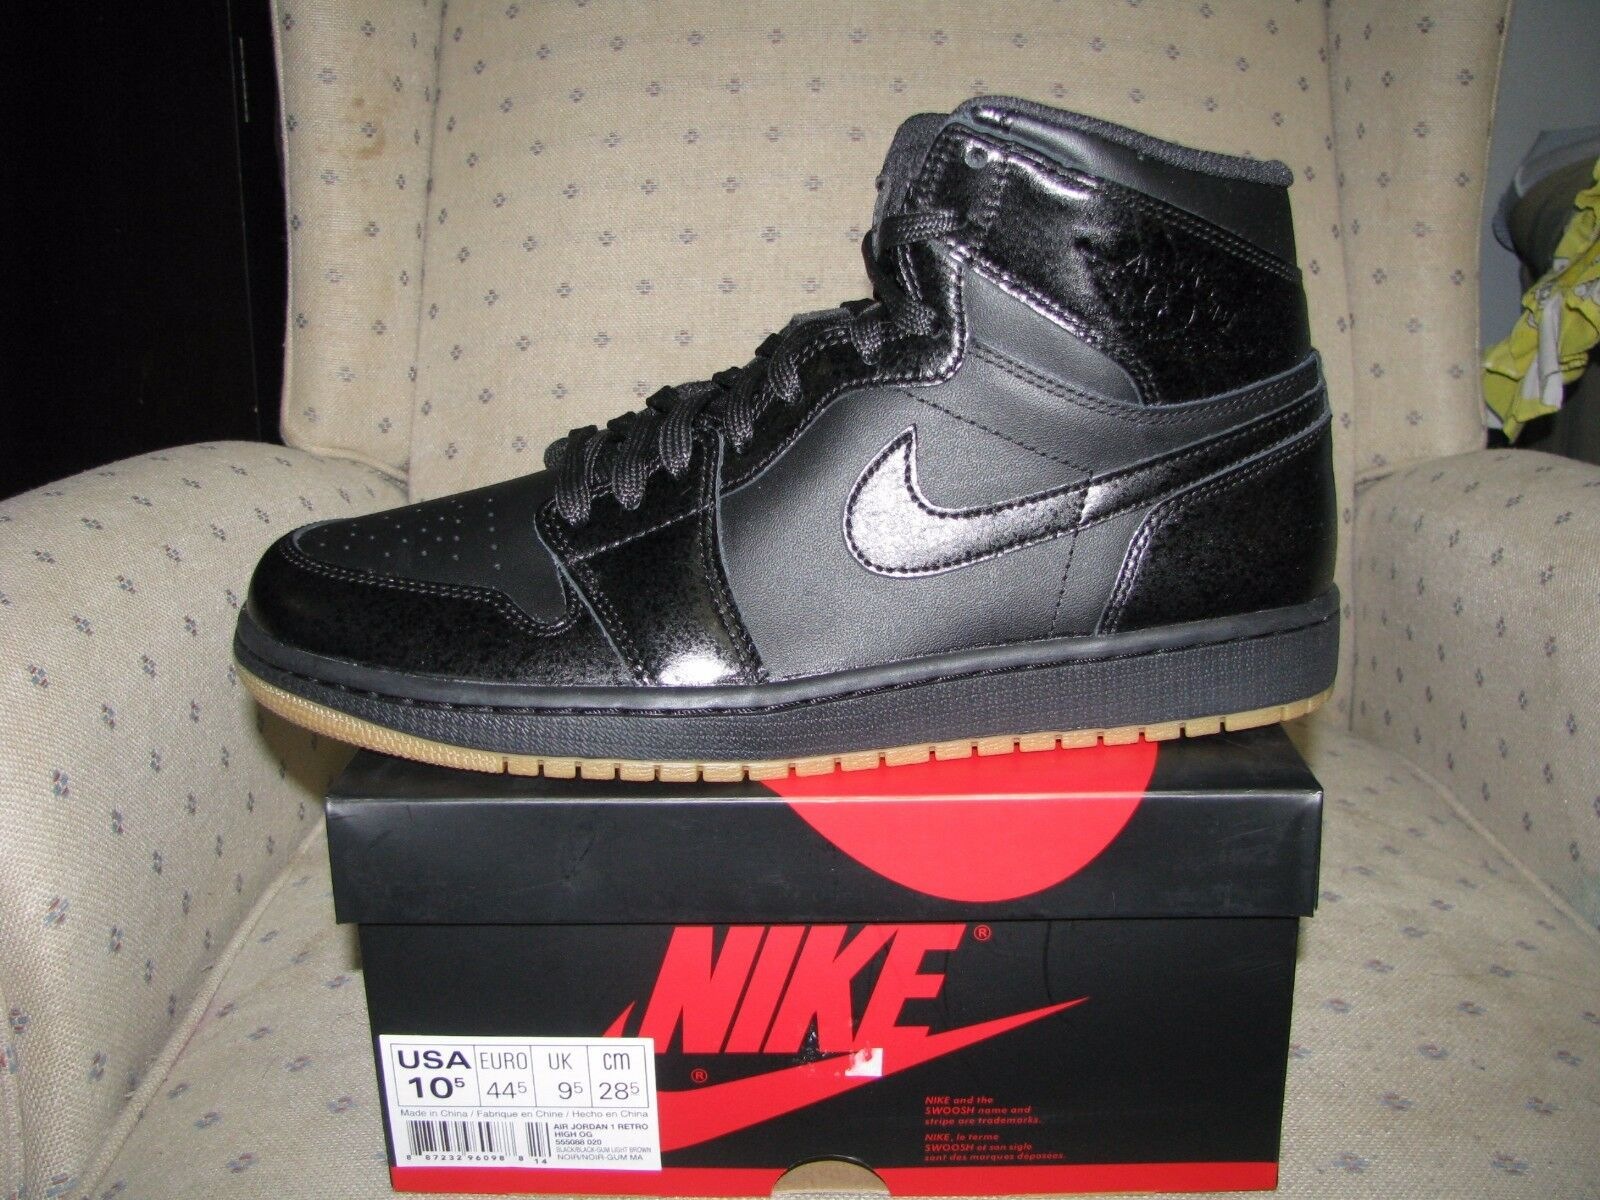 Og Light 1 Air Brown Gum Retro 020 High Men's Blackblack Jordan Nike 555088 AcRq3j45L